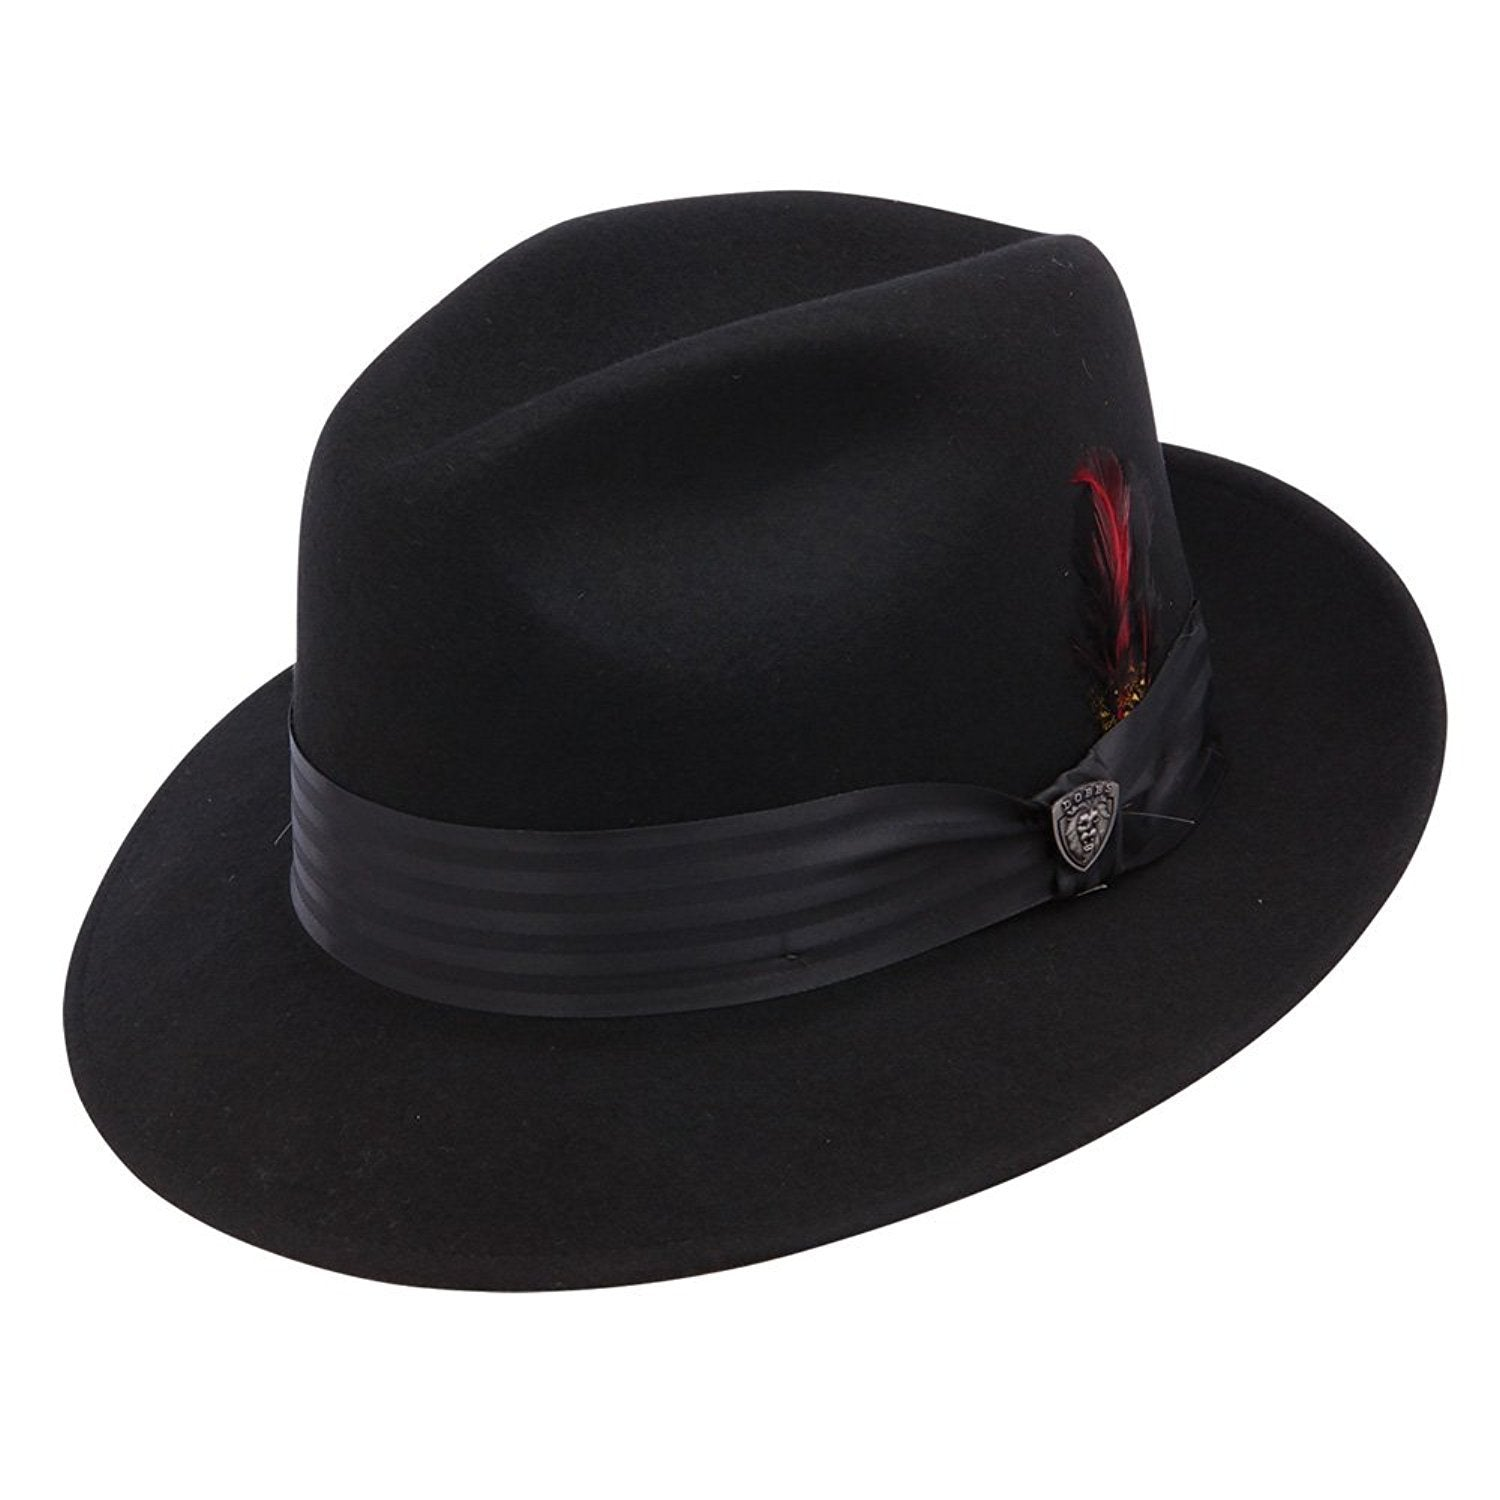 Dobbs Glen Cove Wool Felt Fedora - Black Hat - Dapperfam.com